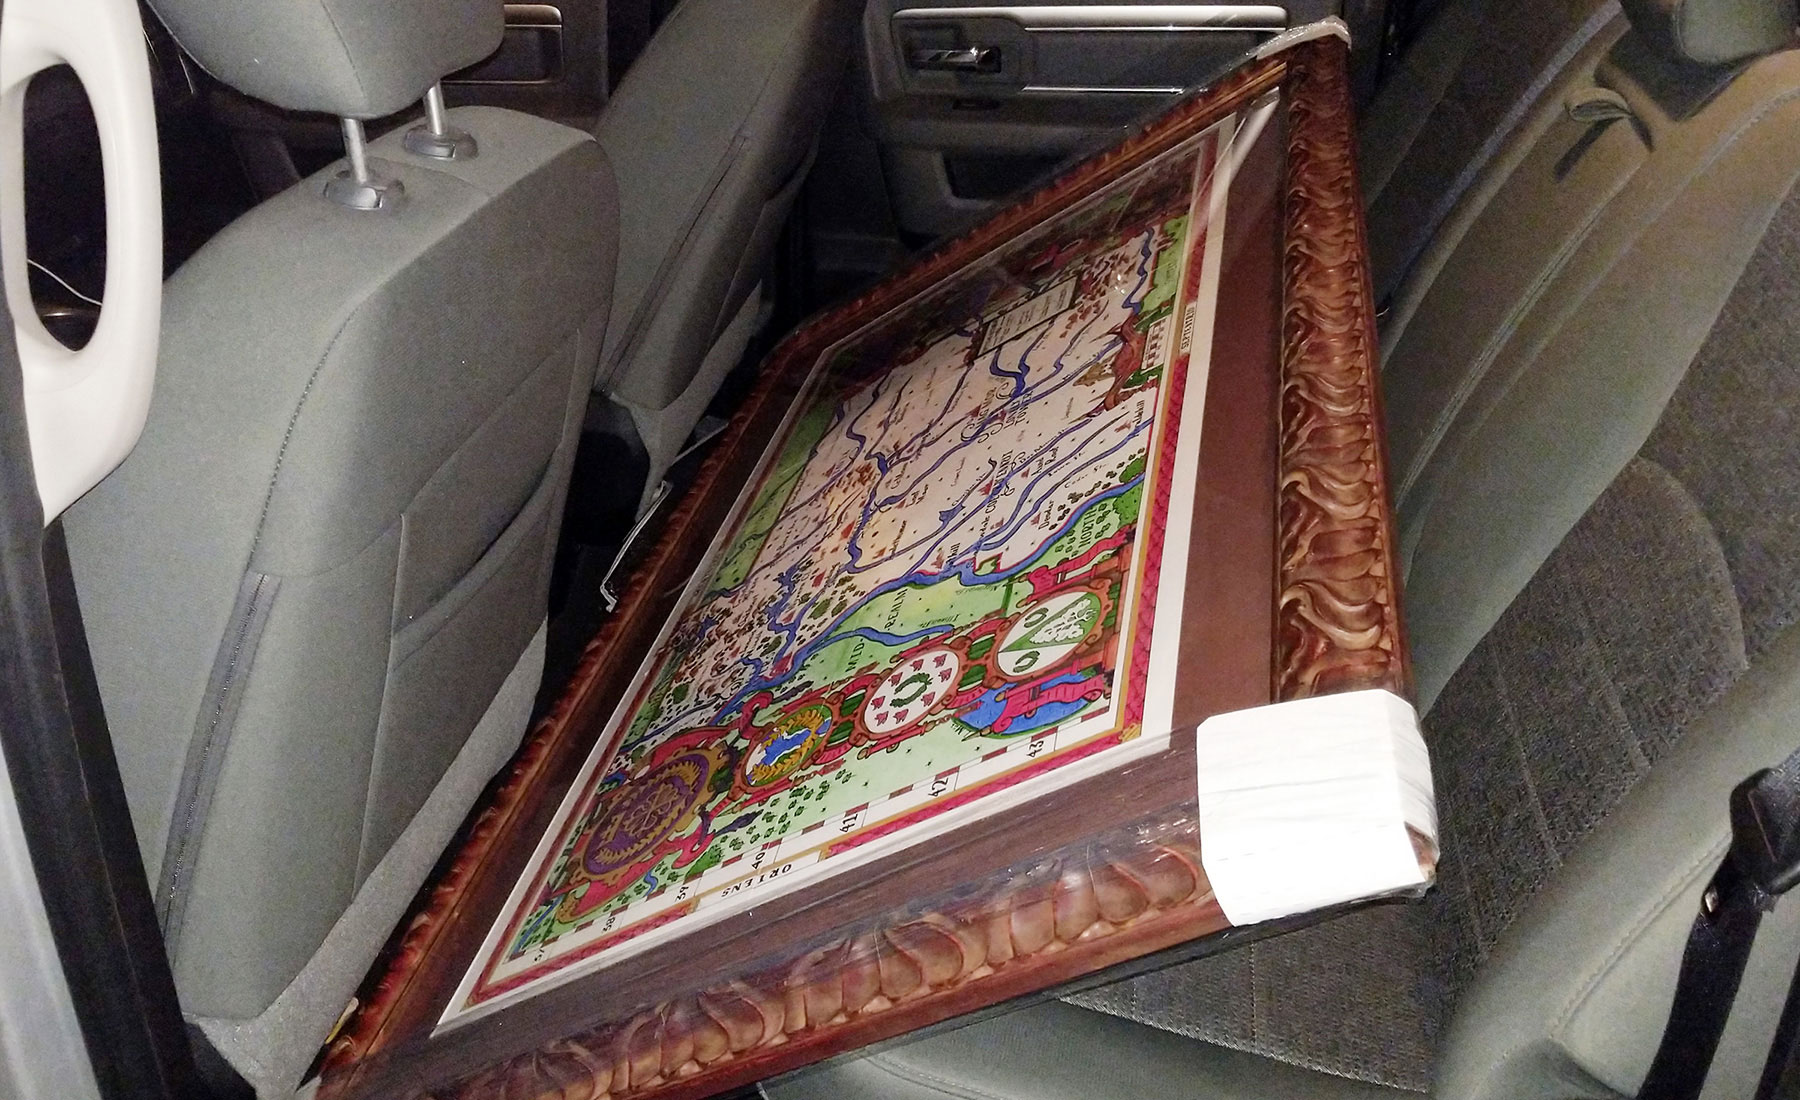 Fit of the framed map in the back row of the truck